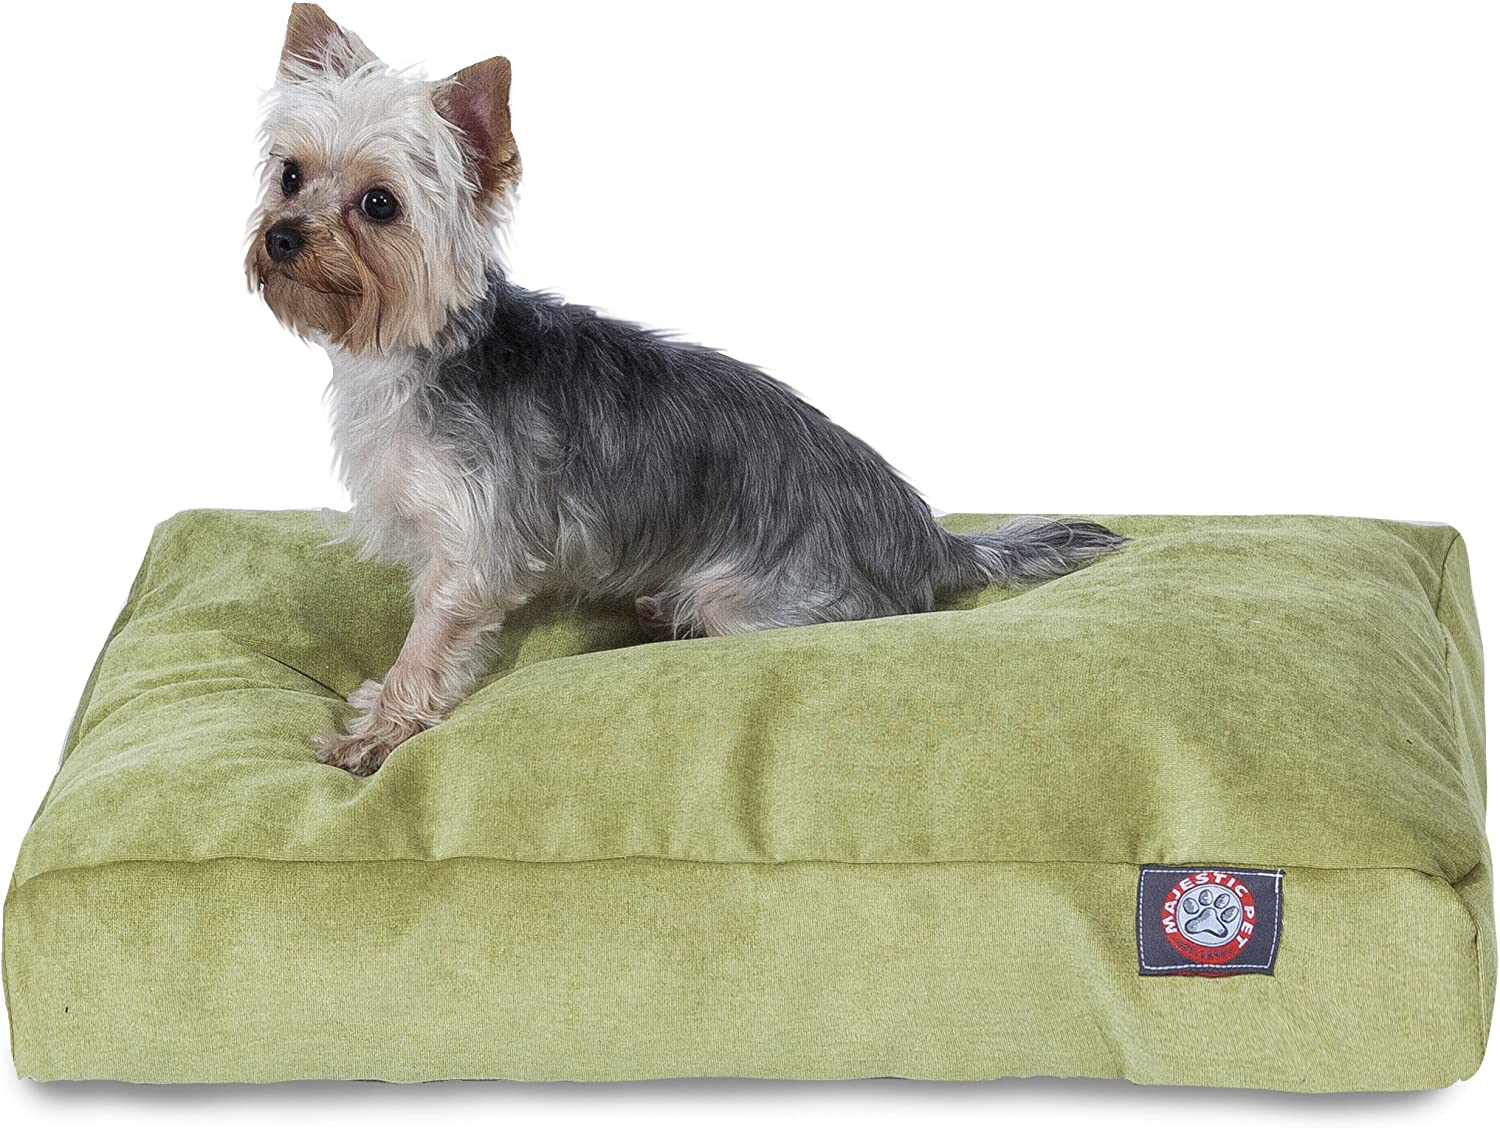 Majestic Villa Collection Small Rectangle Pet Dog Bed